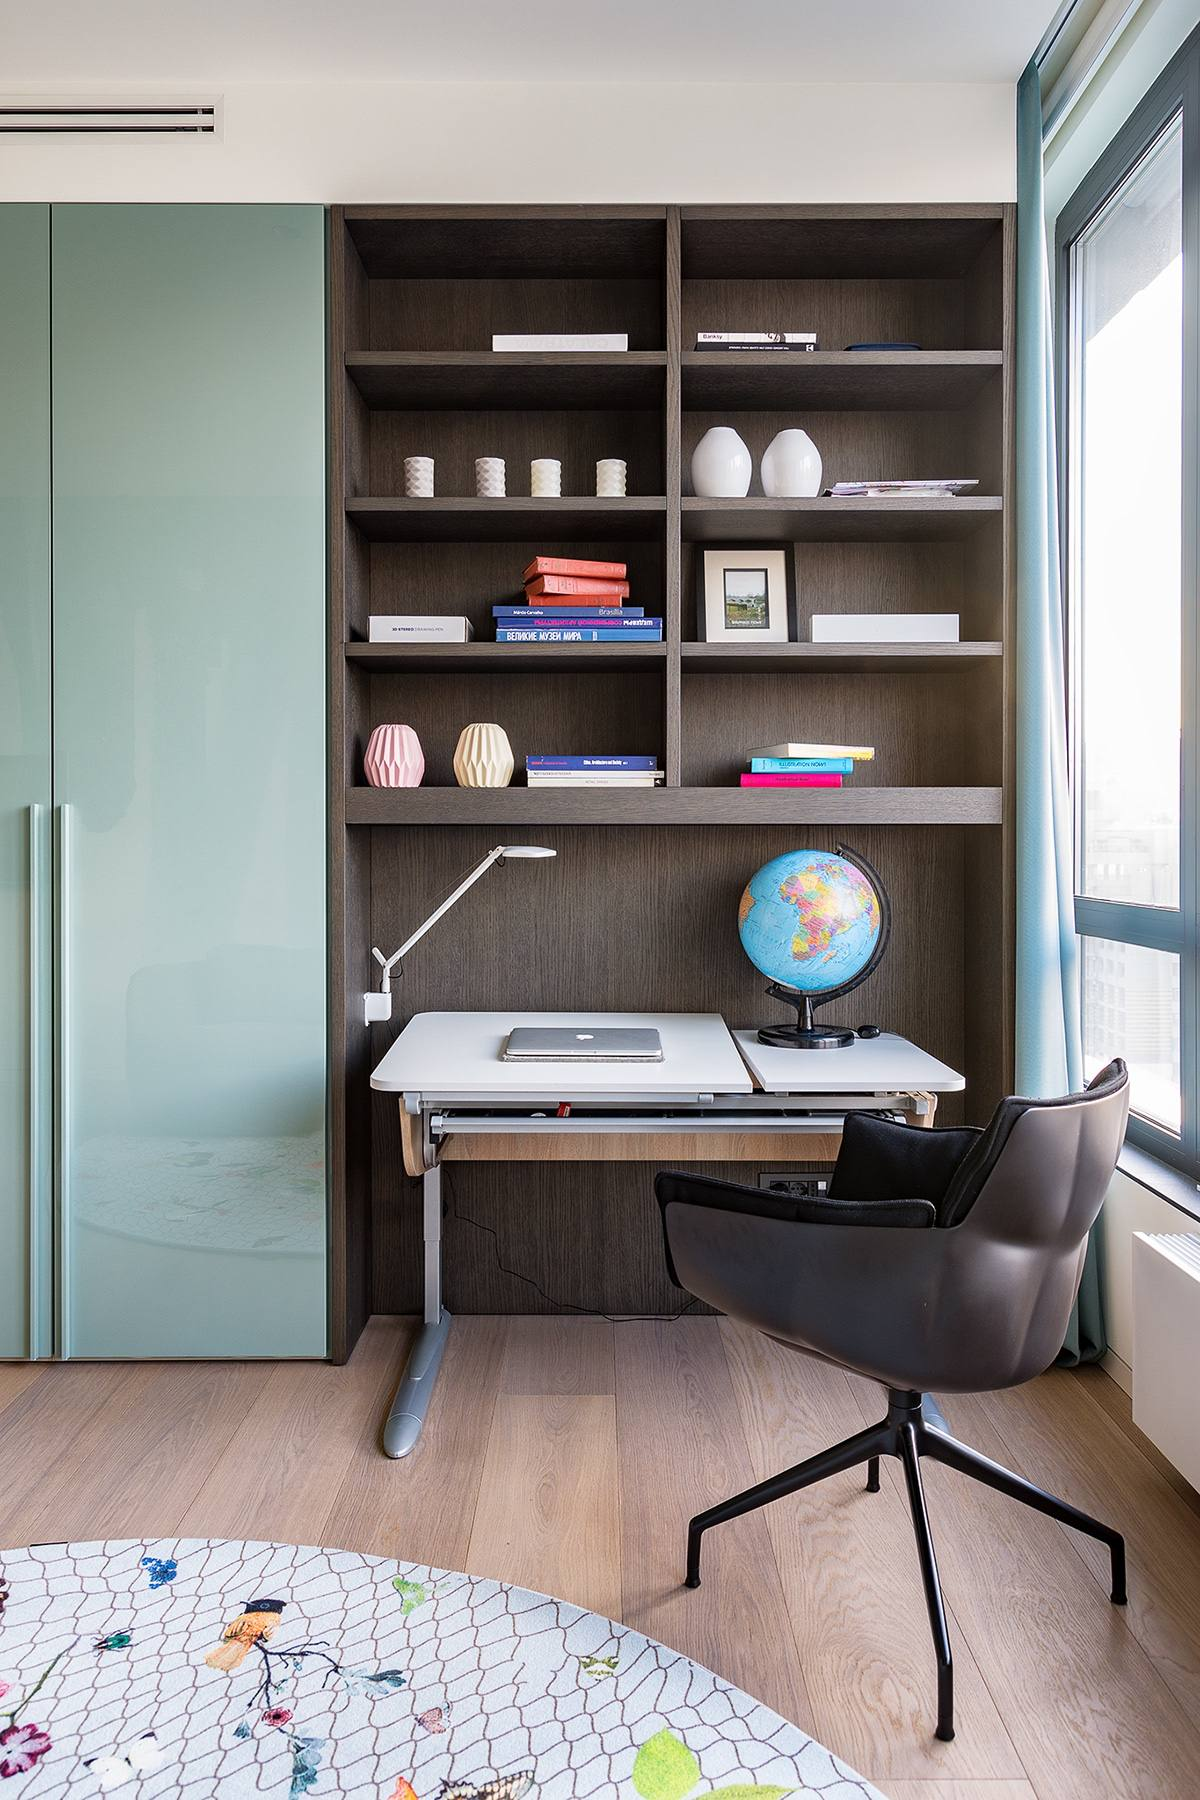 Desk Area - Modern perfection in kyiv apartment